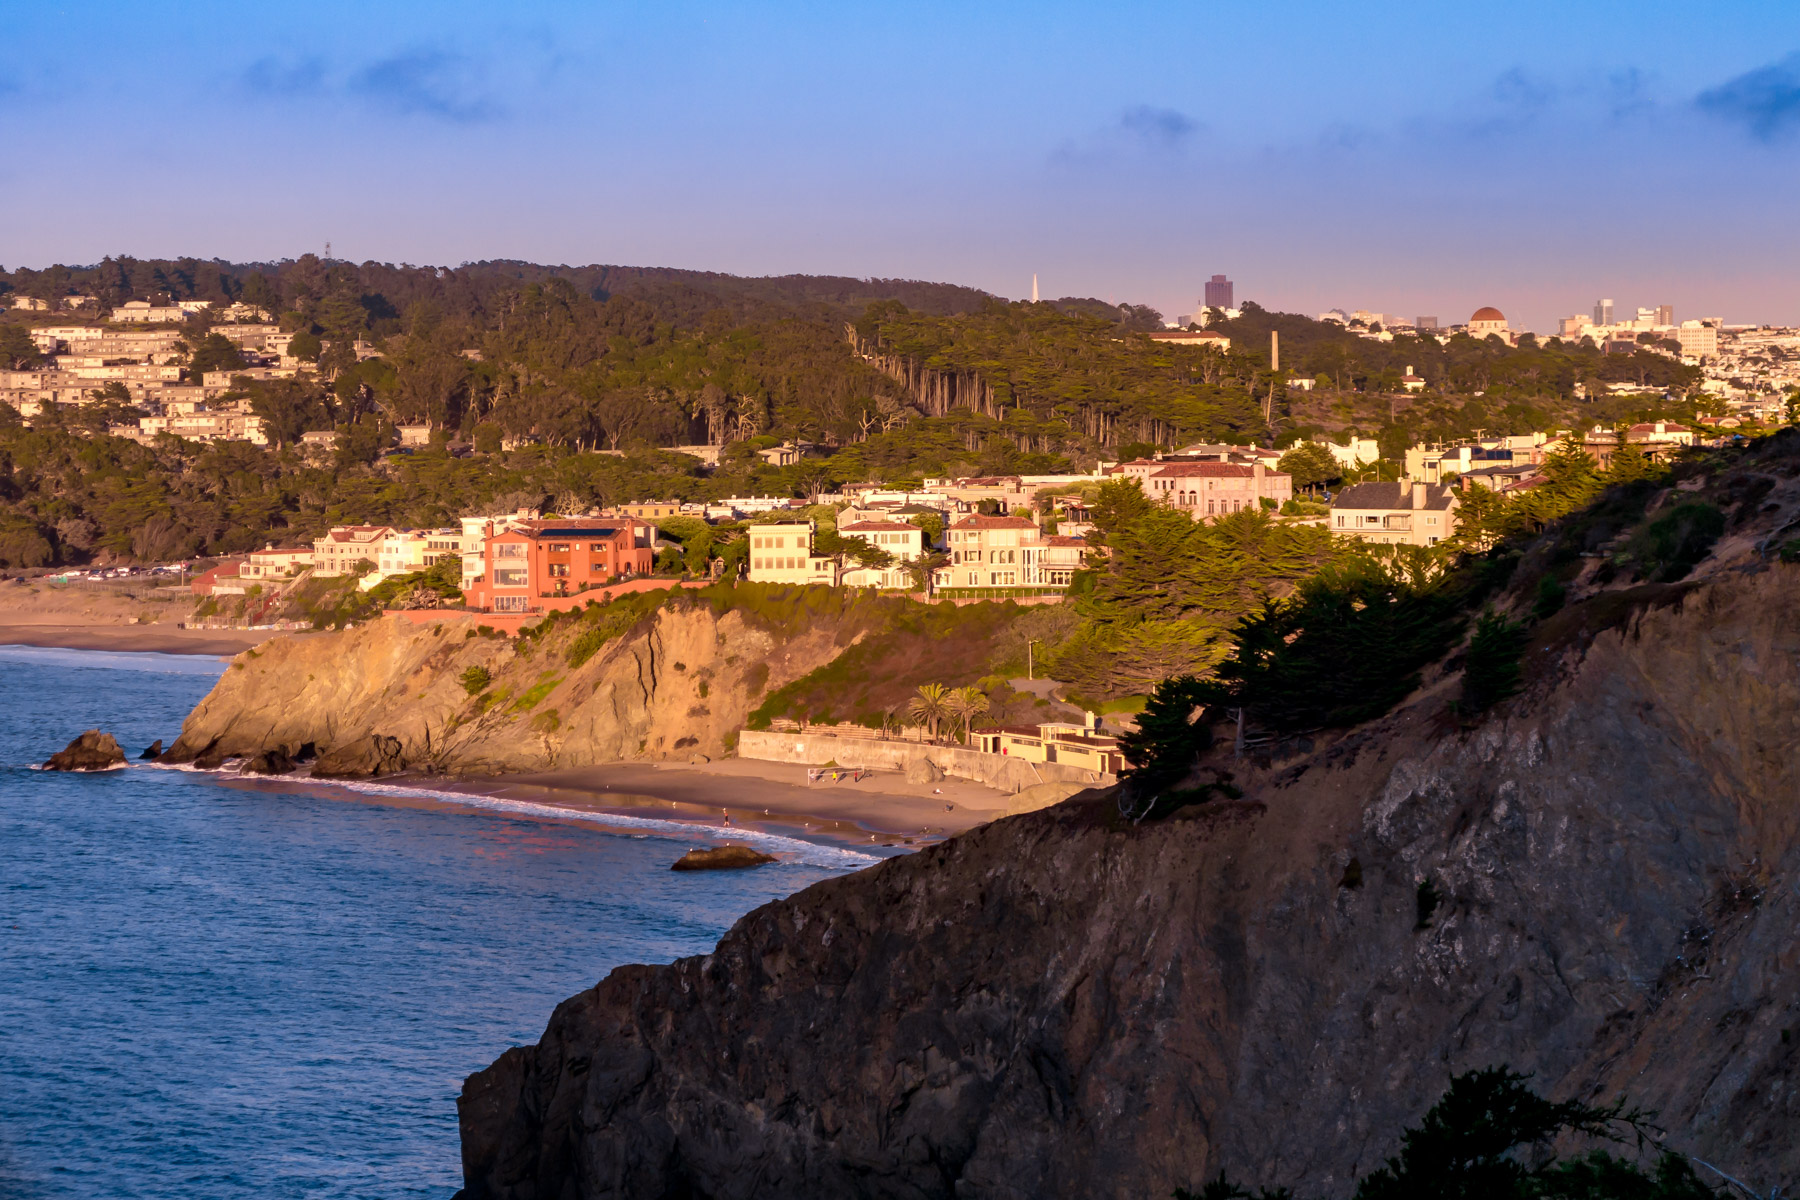 The late evening sun lights San Francisco's Sea Cliff neighborhood, China Beach and the buildings of the Presidio, as seen from the nearby Coastal Trail at Lands End.